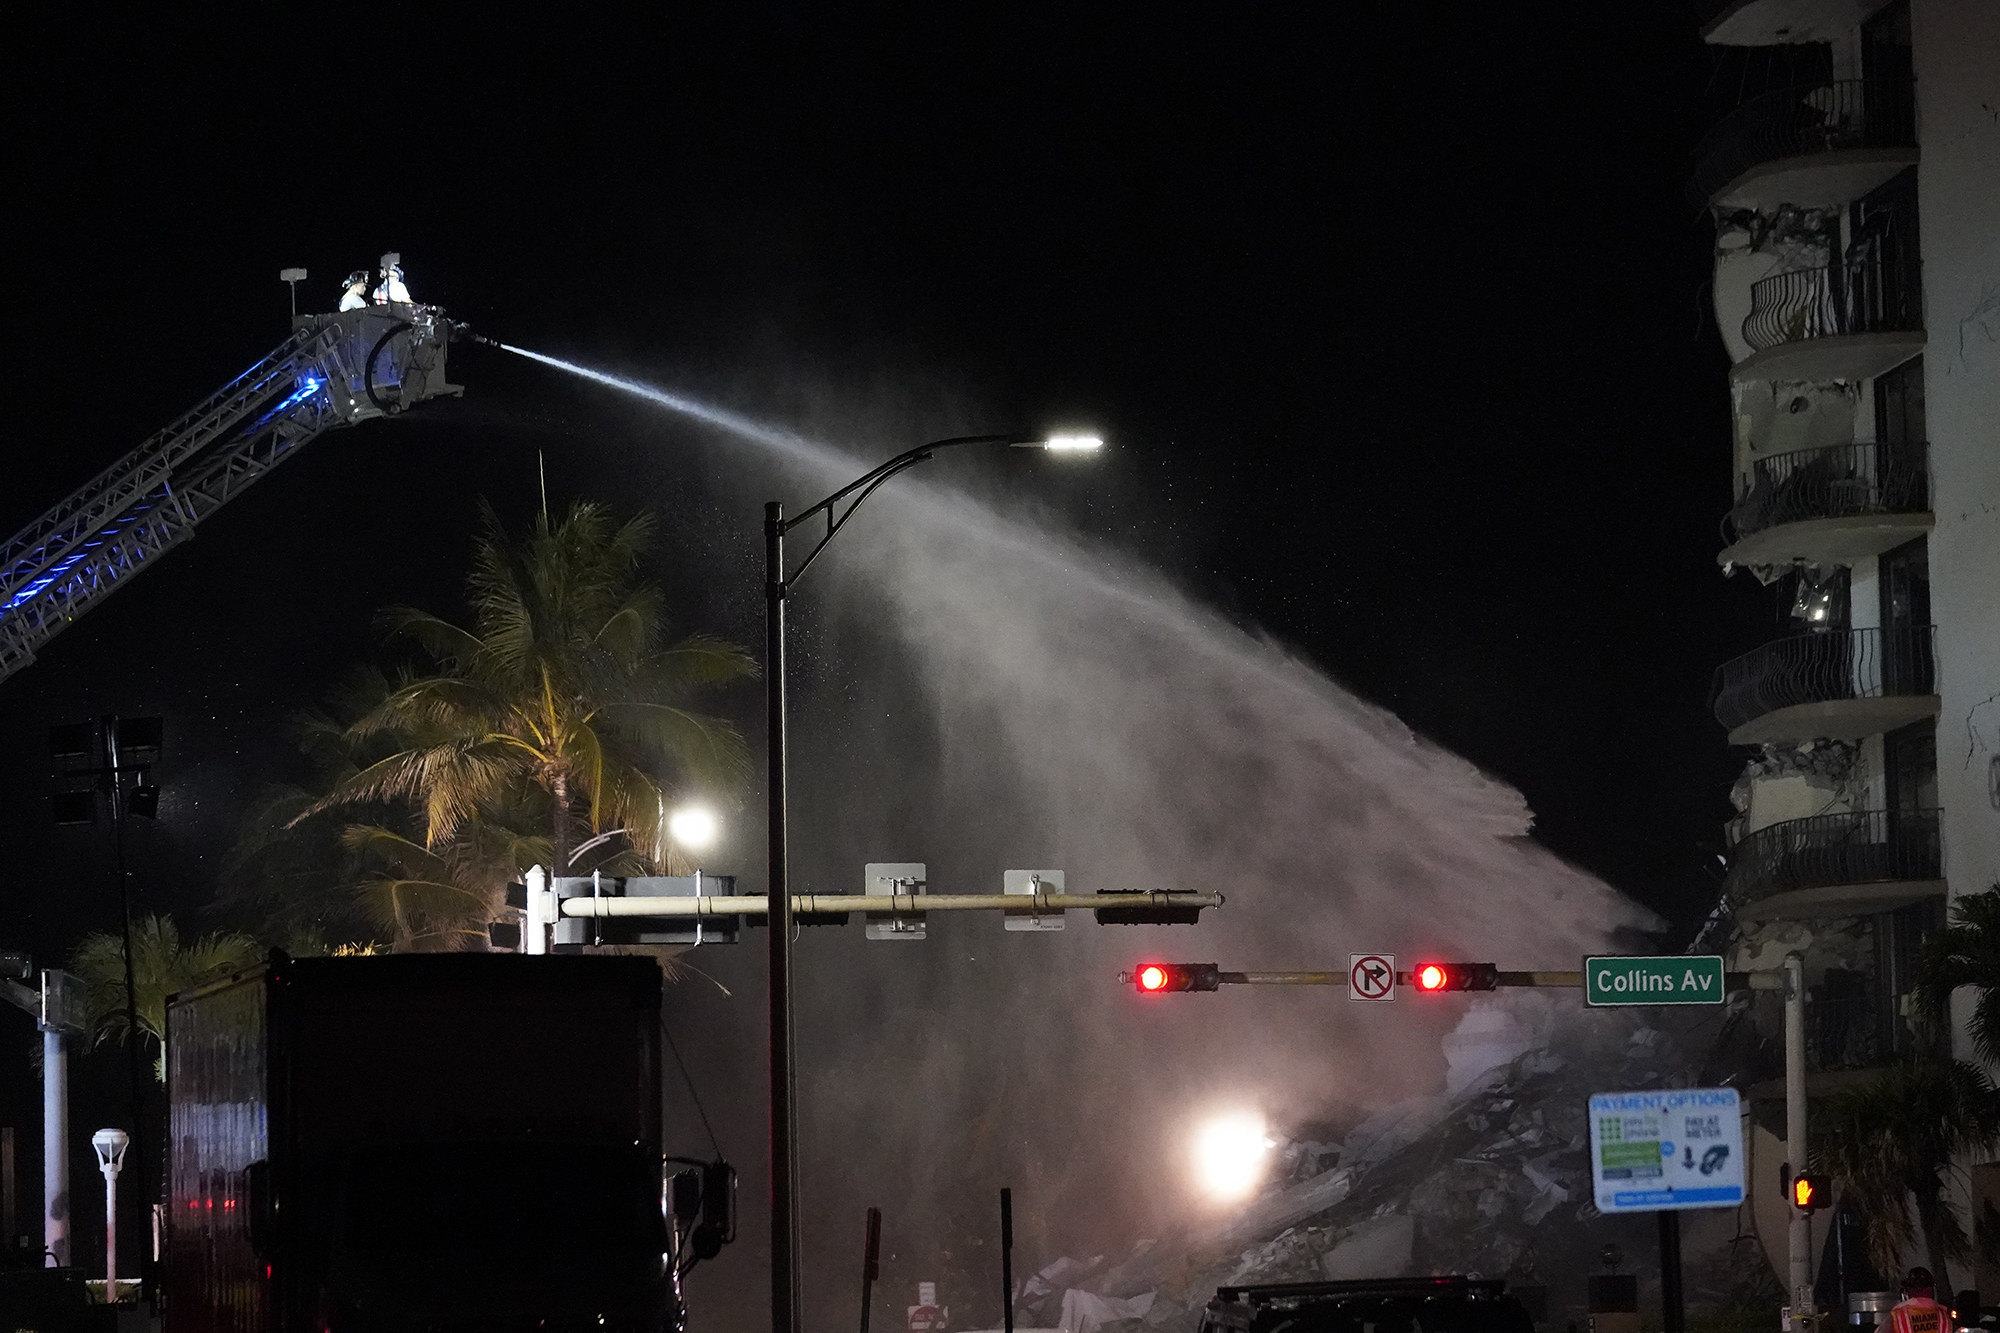 A fire ladder sprays water onto the rubble of a partially collapsed building at night